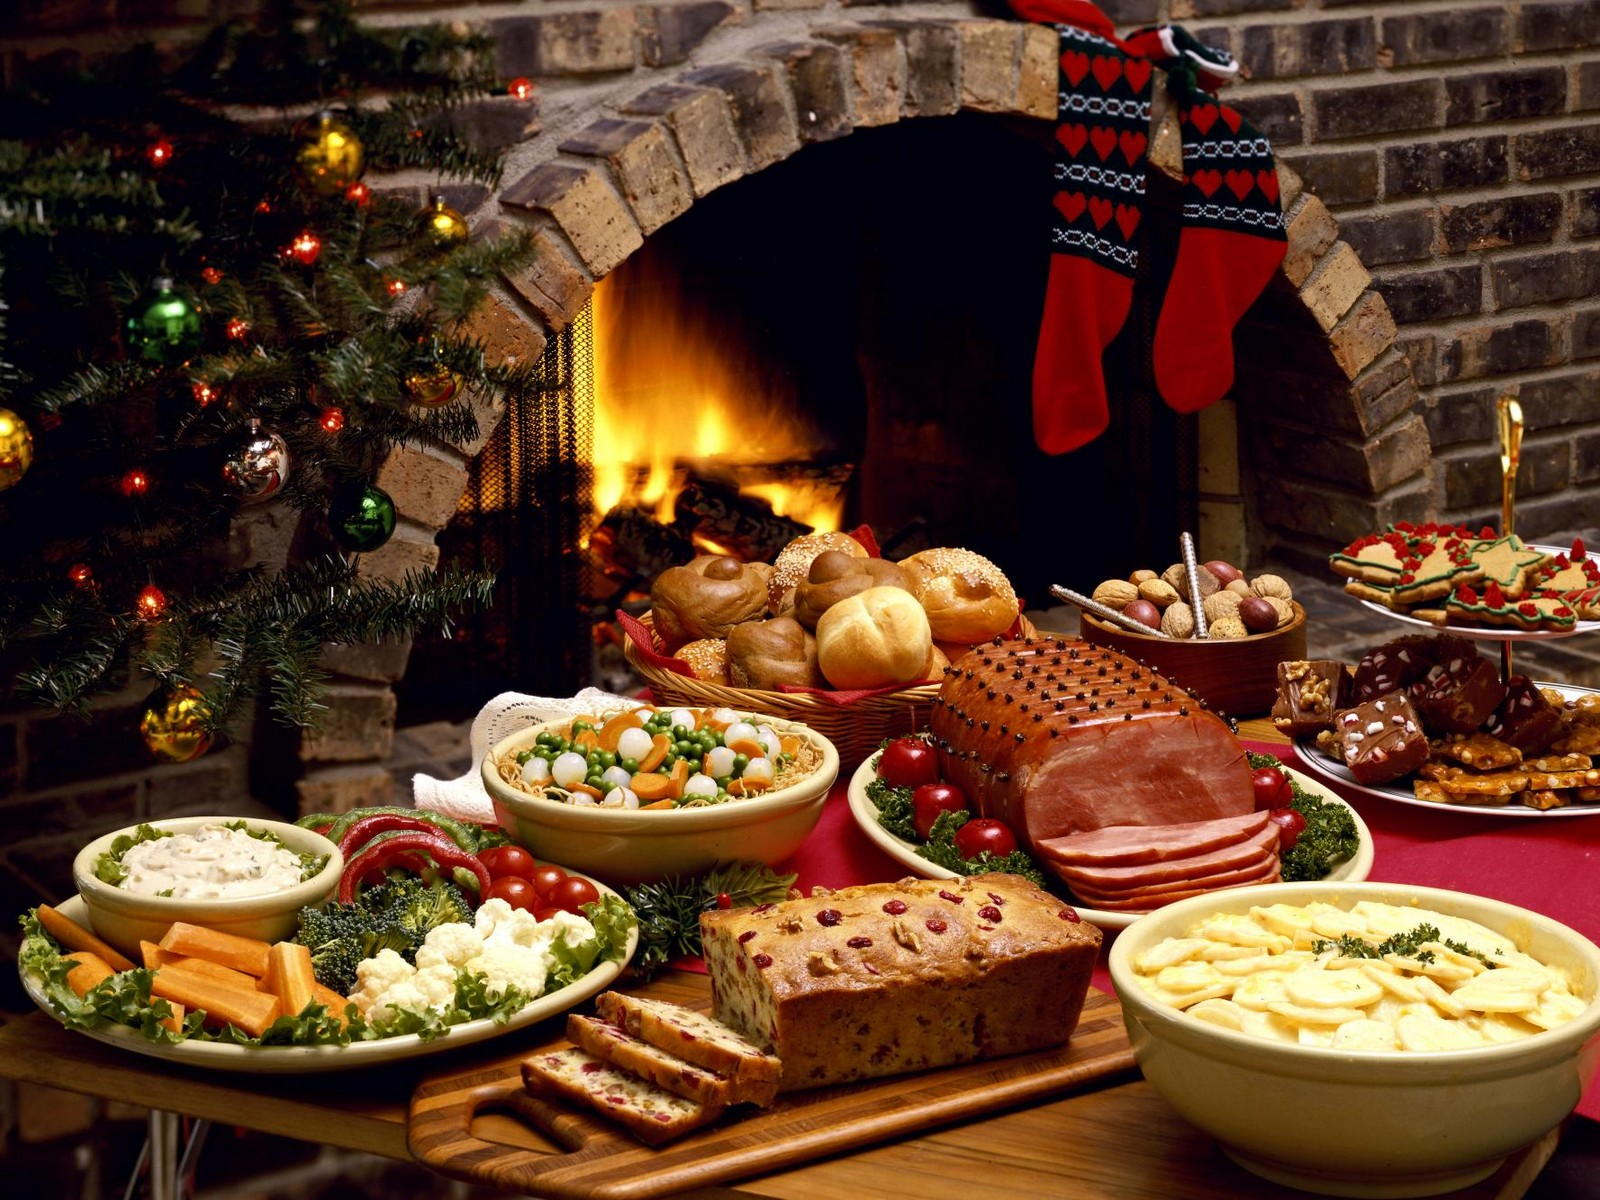 wallpaper Christmas food HD Wallpaper 1600x1200